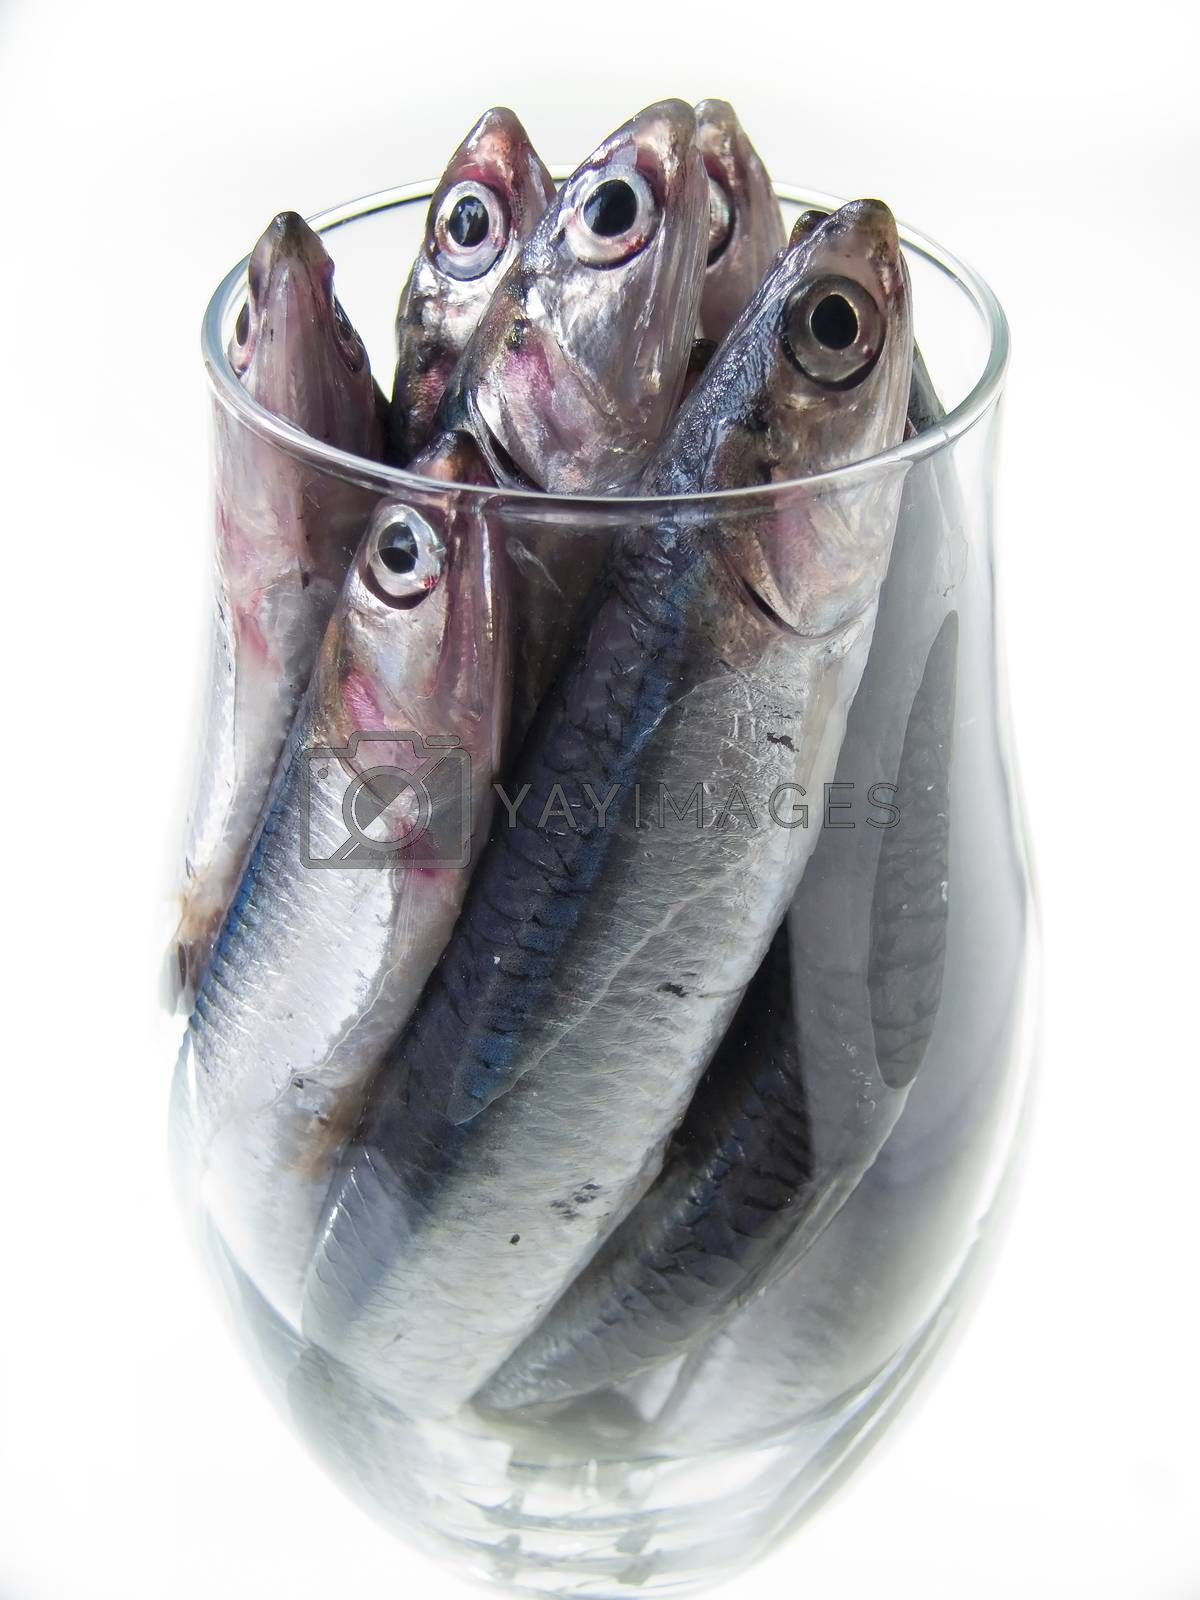 fish in the glass